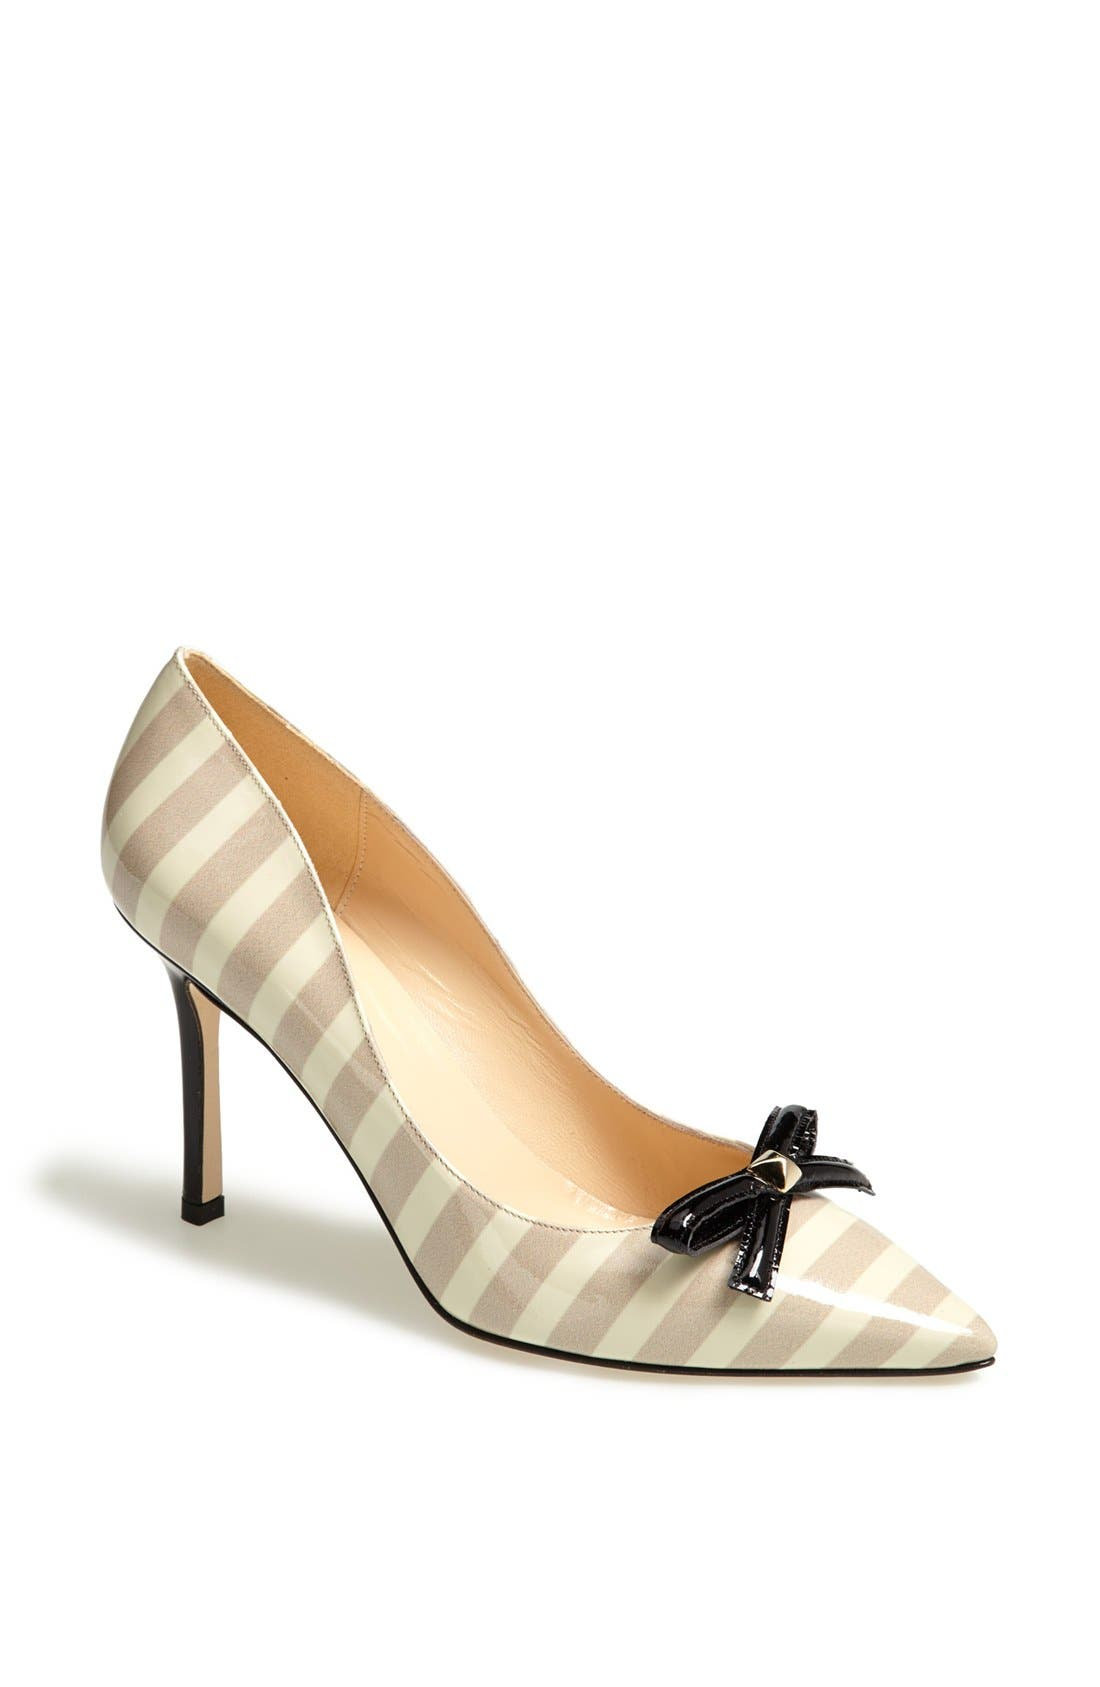 Alternate Image 1 Selected - kate spade new york 'pietra' leather pump